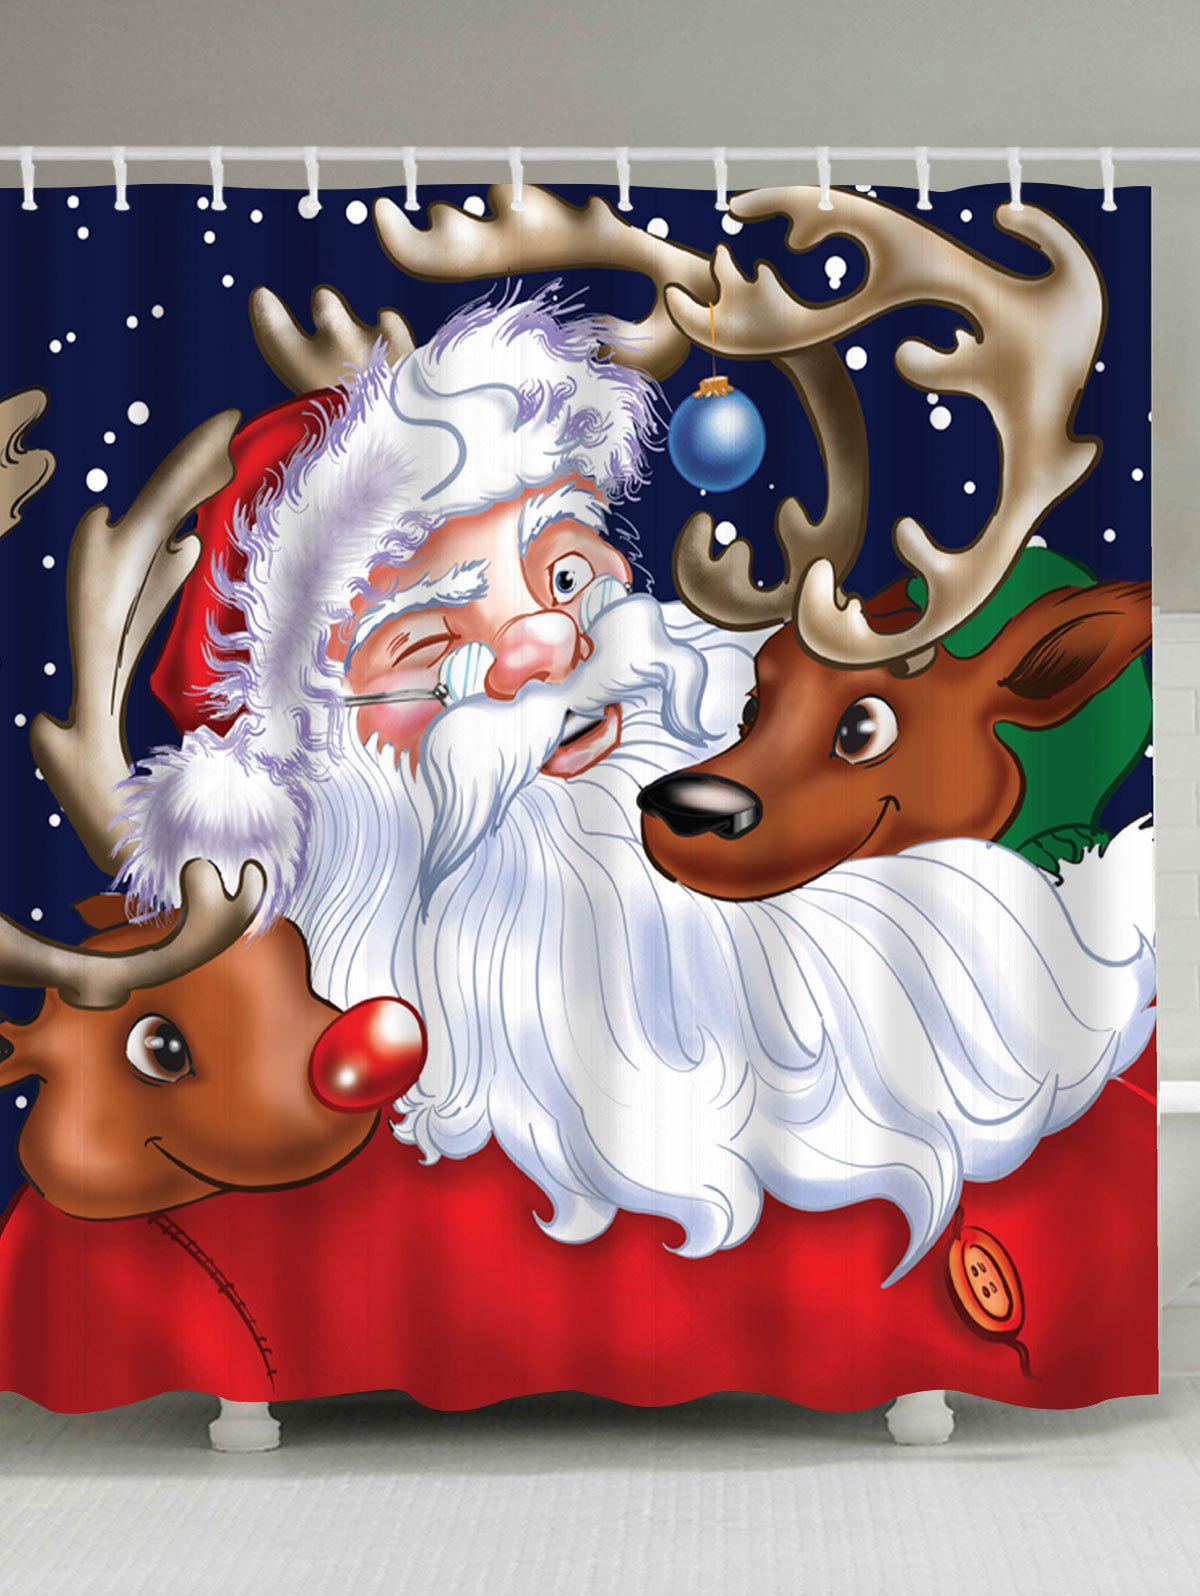 Santa Claus Reindeer Waterproof Christmas Shower CurtainHOME<br><br>Size: W71 INCH * L71 INCH; Color: COLORMIX; Products Type: Shower Curtains; Materials: Polyester; Pattern: Animal,Santa Claus; Style: Festival; Number of Hook Holes: W59 inch*L71 inch: 10; W71 inch*L71 inch: 12; W71 inch*L79 inch: 12; Package Contents: 1 x Shower Curtain 1 x Hooks (Set);